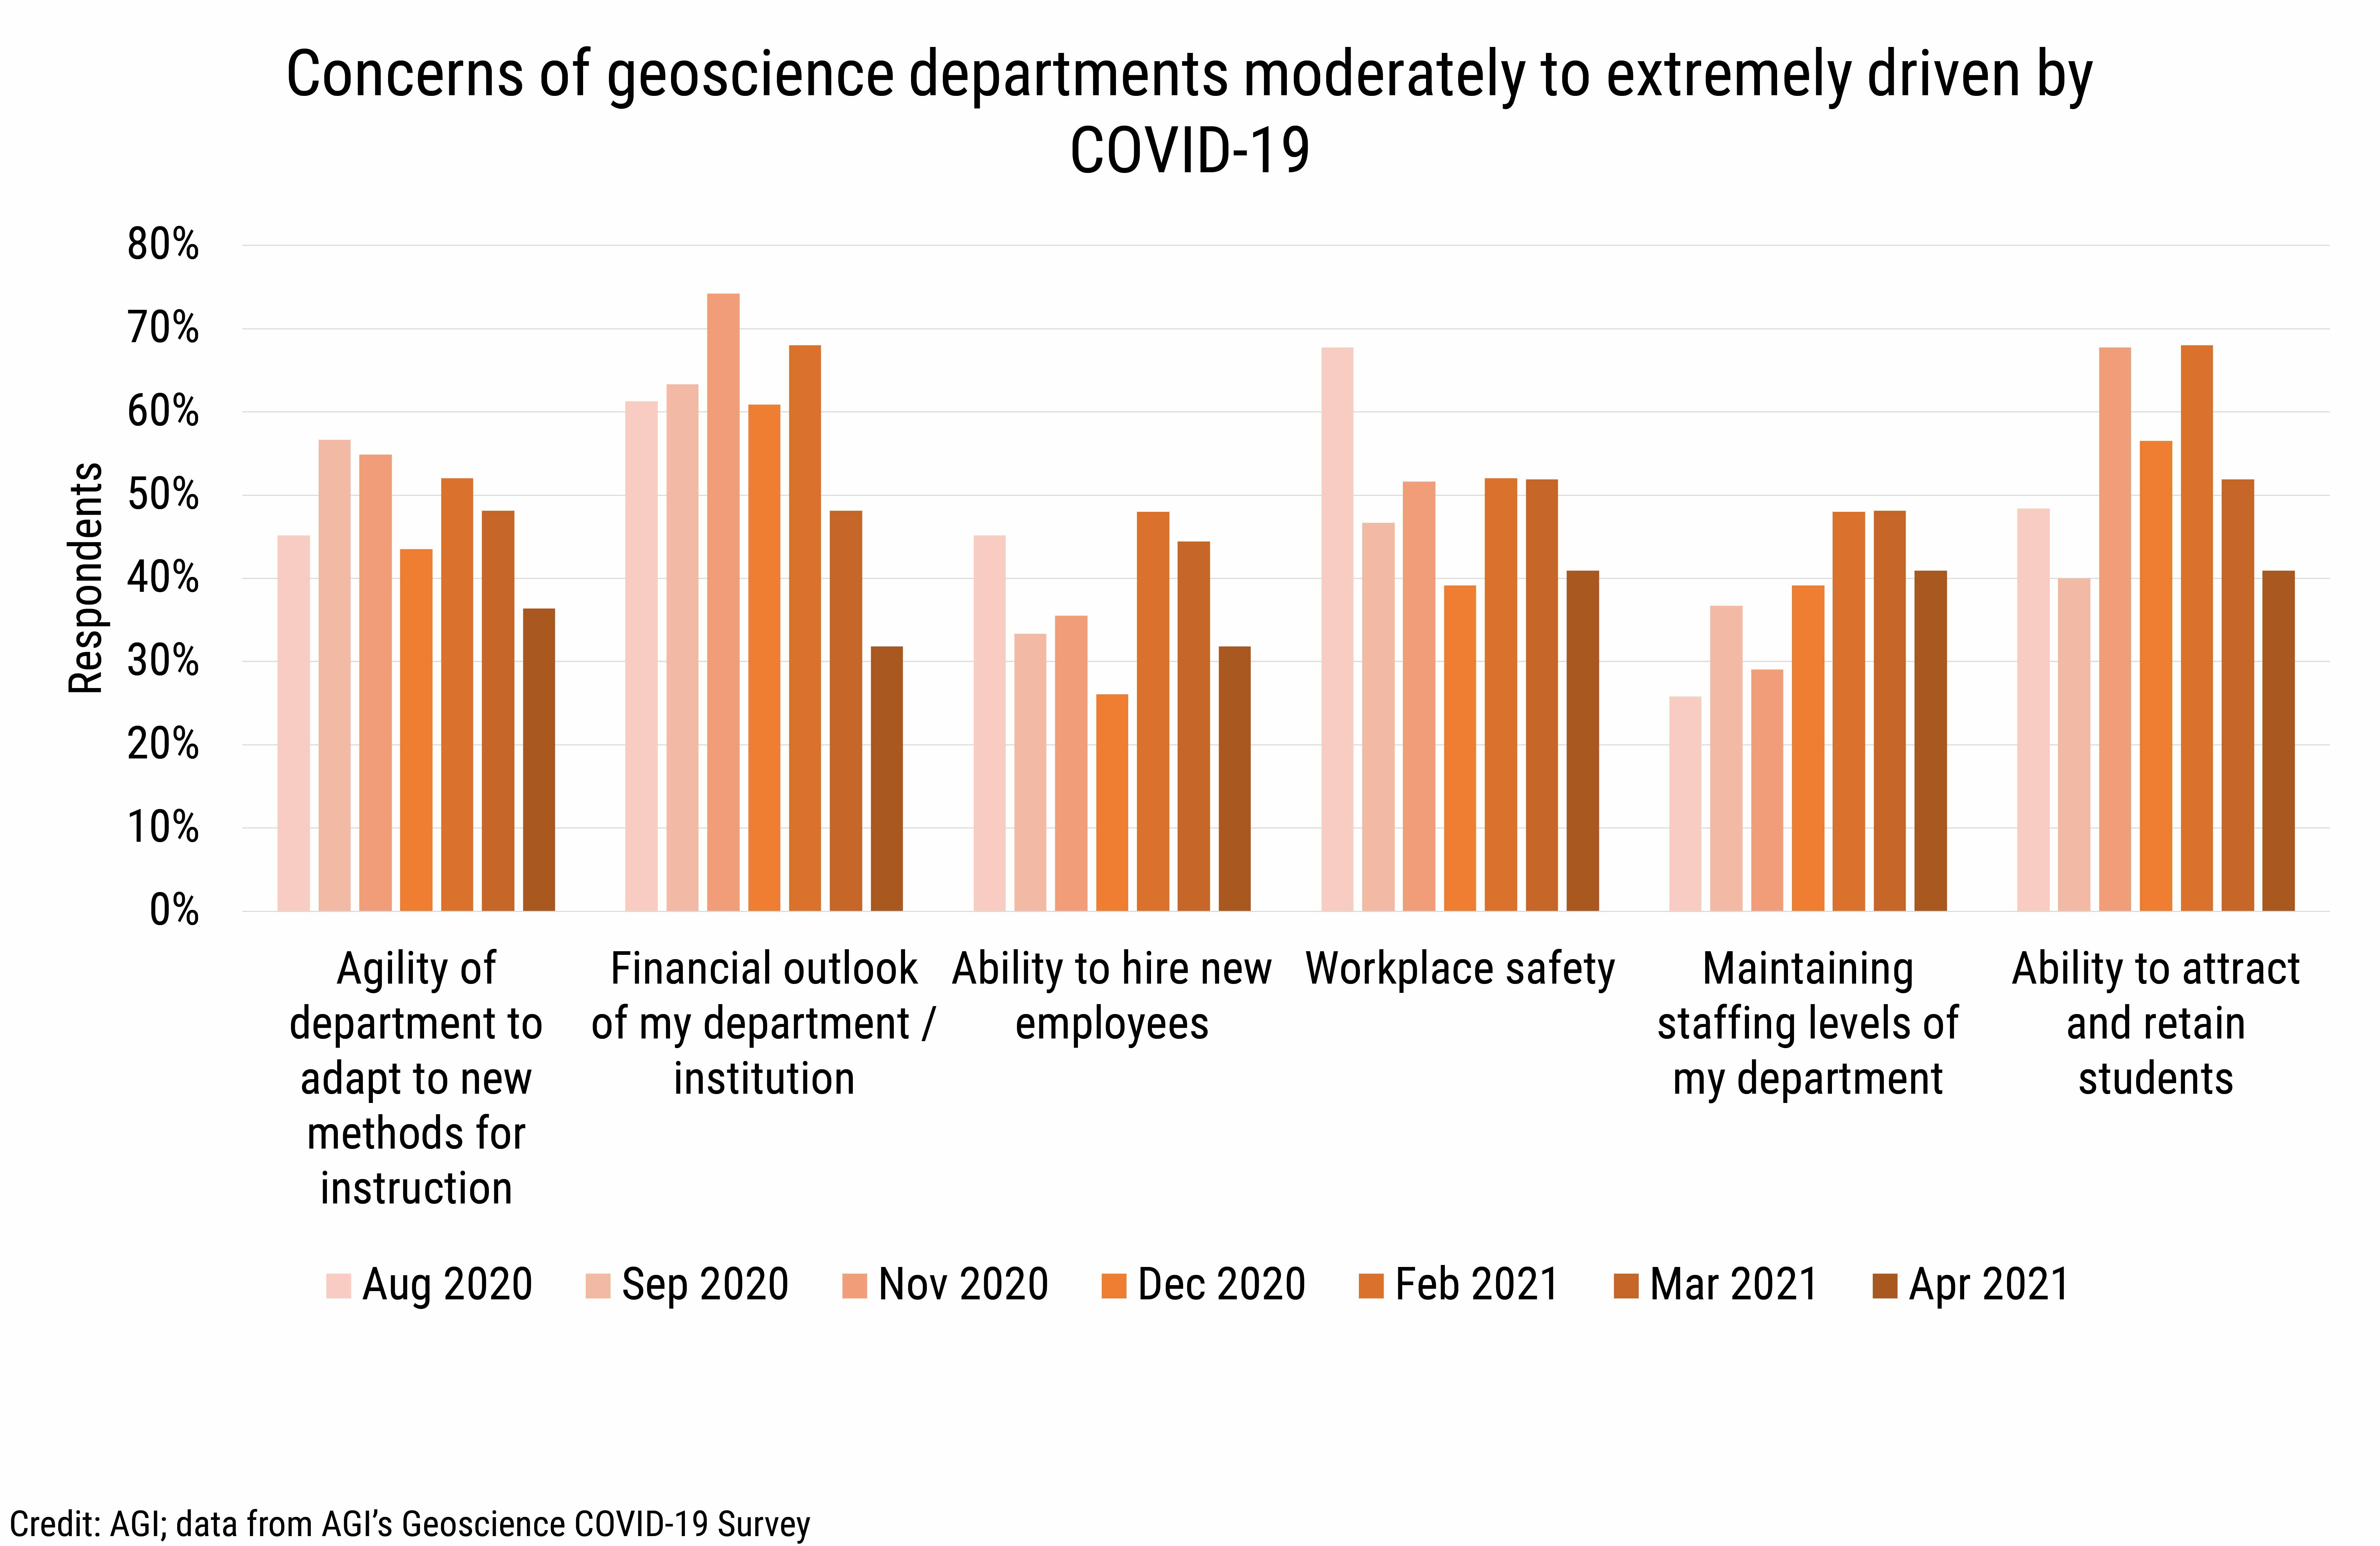 DB_2021-014 chart 14: Concerns of geoscience departments moderately to extremely driven by COVID-19 (Credit: AGI; data from AGI's Geoscience COVID-19 Survey)